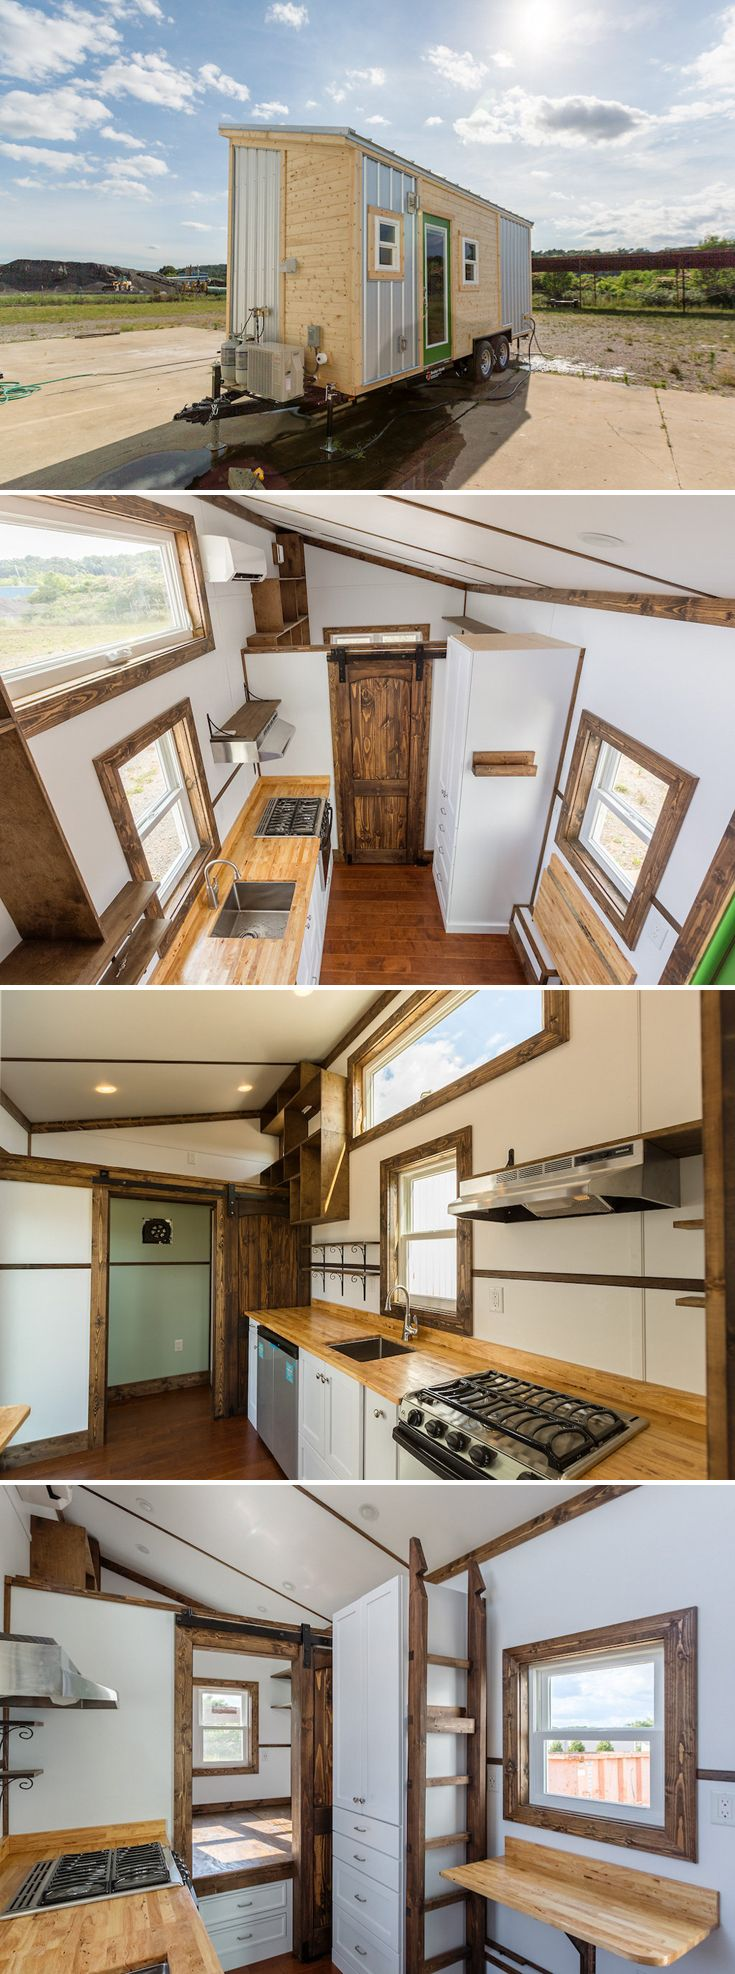 The 20' Borough offers a main floor bedroom with space to fit a king bed. In the bed platform are two drawers and three doors for storage spaces.